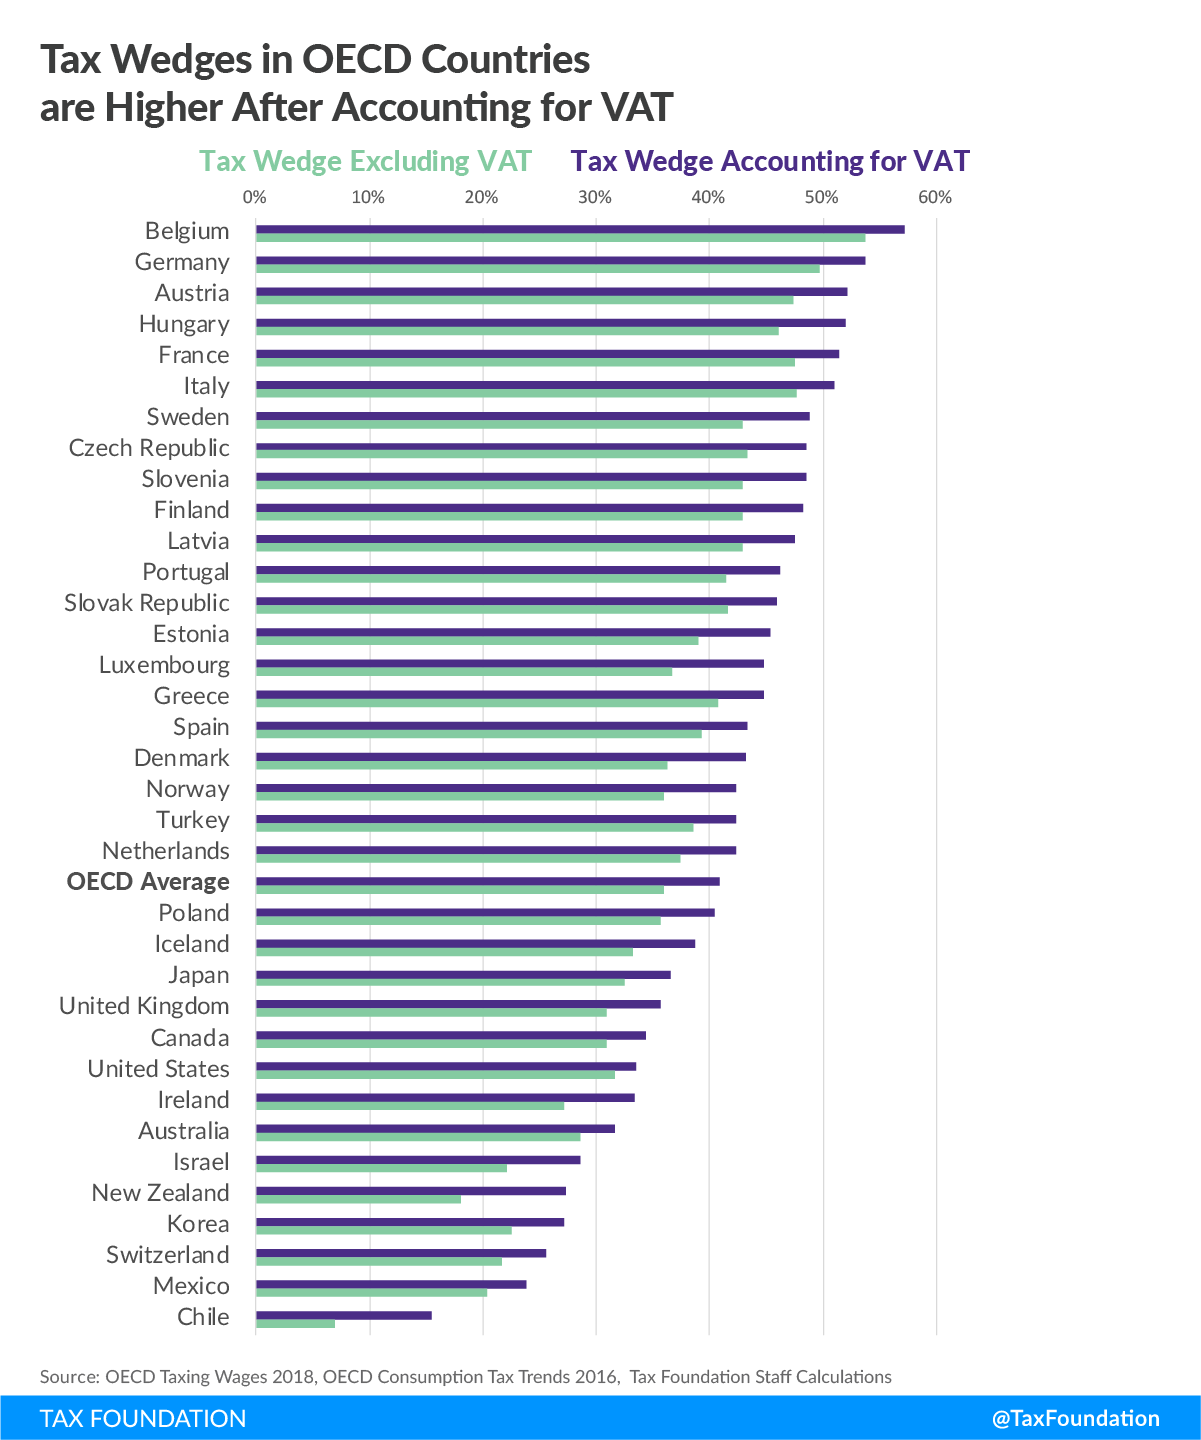 Tax Wedges in OECD Countries are Higher After Accounting for VAT